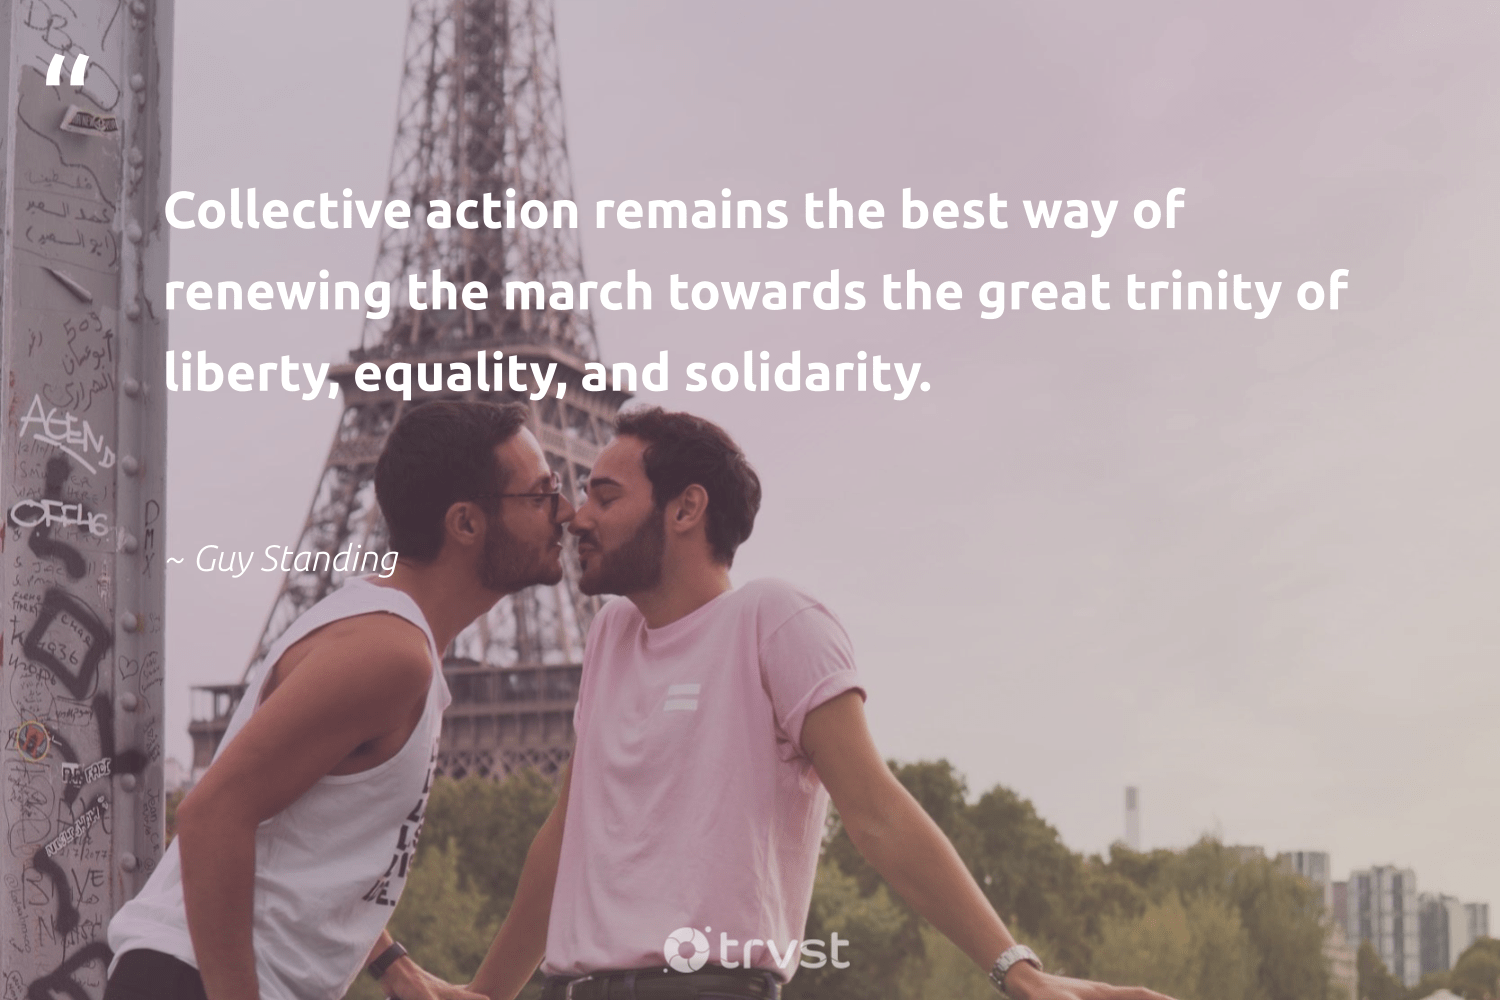 """Collective action remains the best way of renewing the march towards the great trinity of liberty, equality, and solidarity.""  - Guy Standing #trvst #quotes #equality #collectiveaction #equalrights #socialgood #giveback #dogood #equalopportunity #socialchange #bethechange #dosomething"